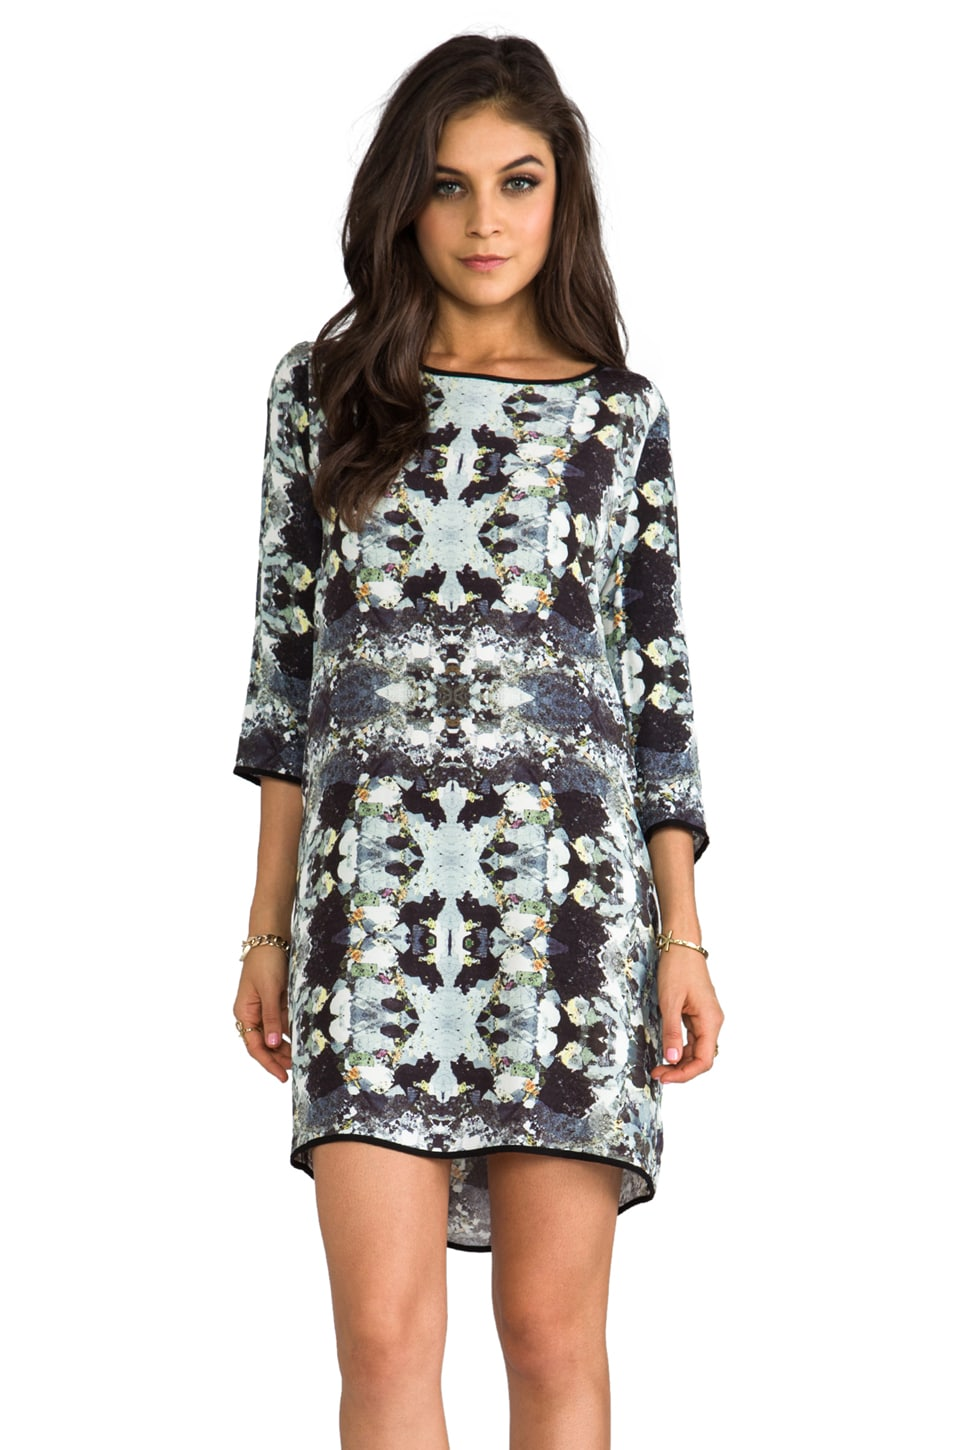 SAM&LAVI Zahara Shift Dress in Kaleidoscope